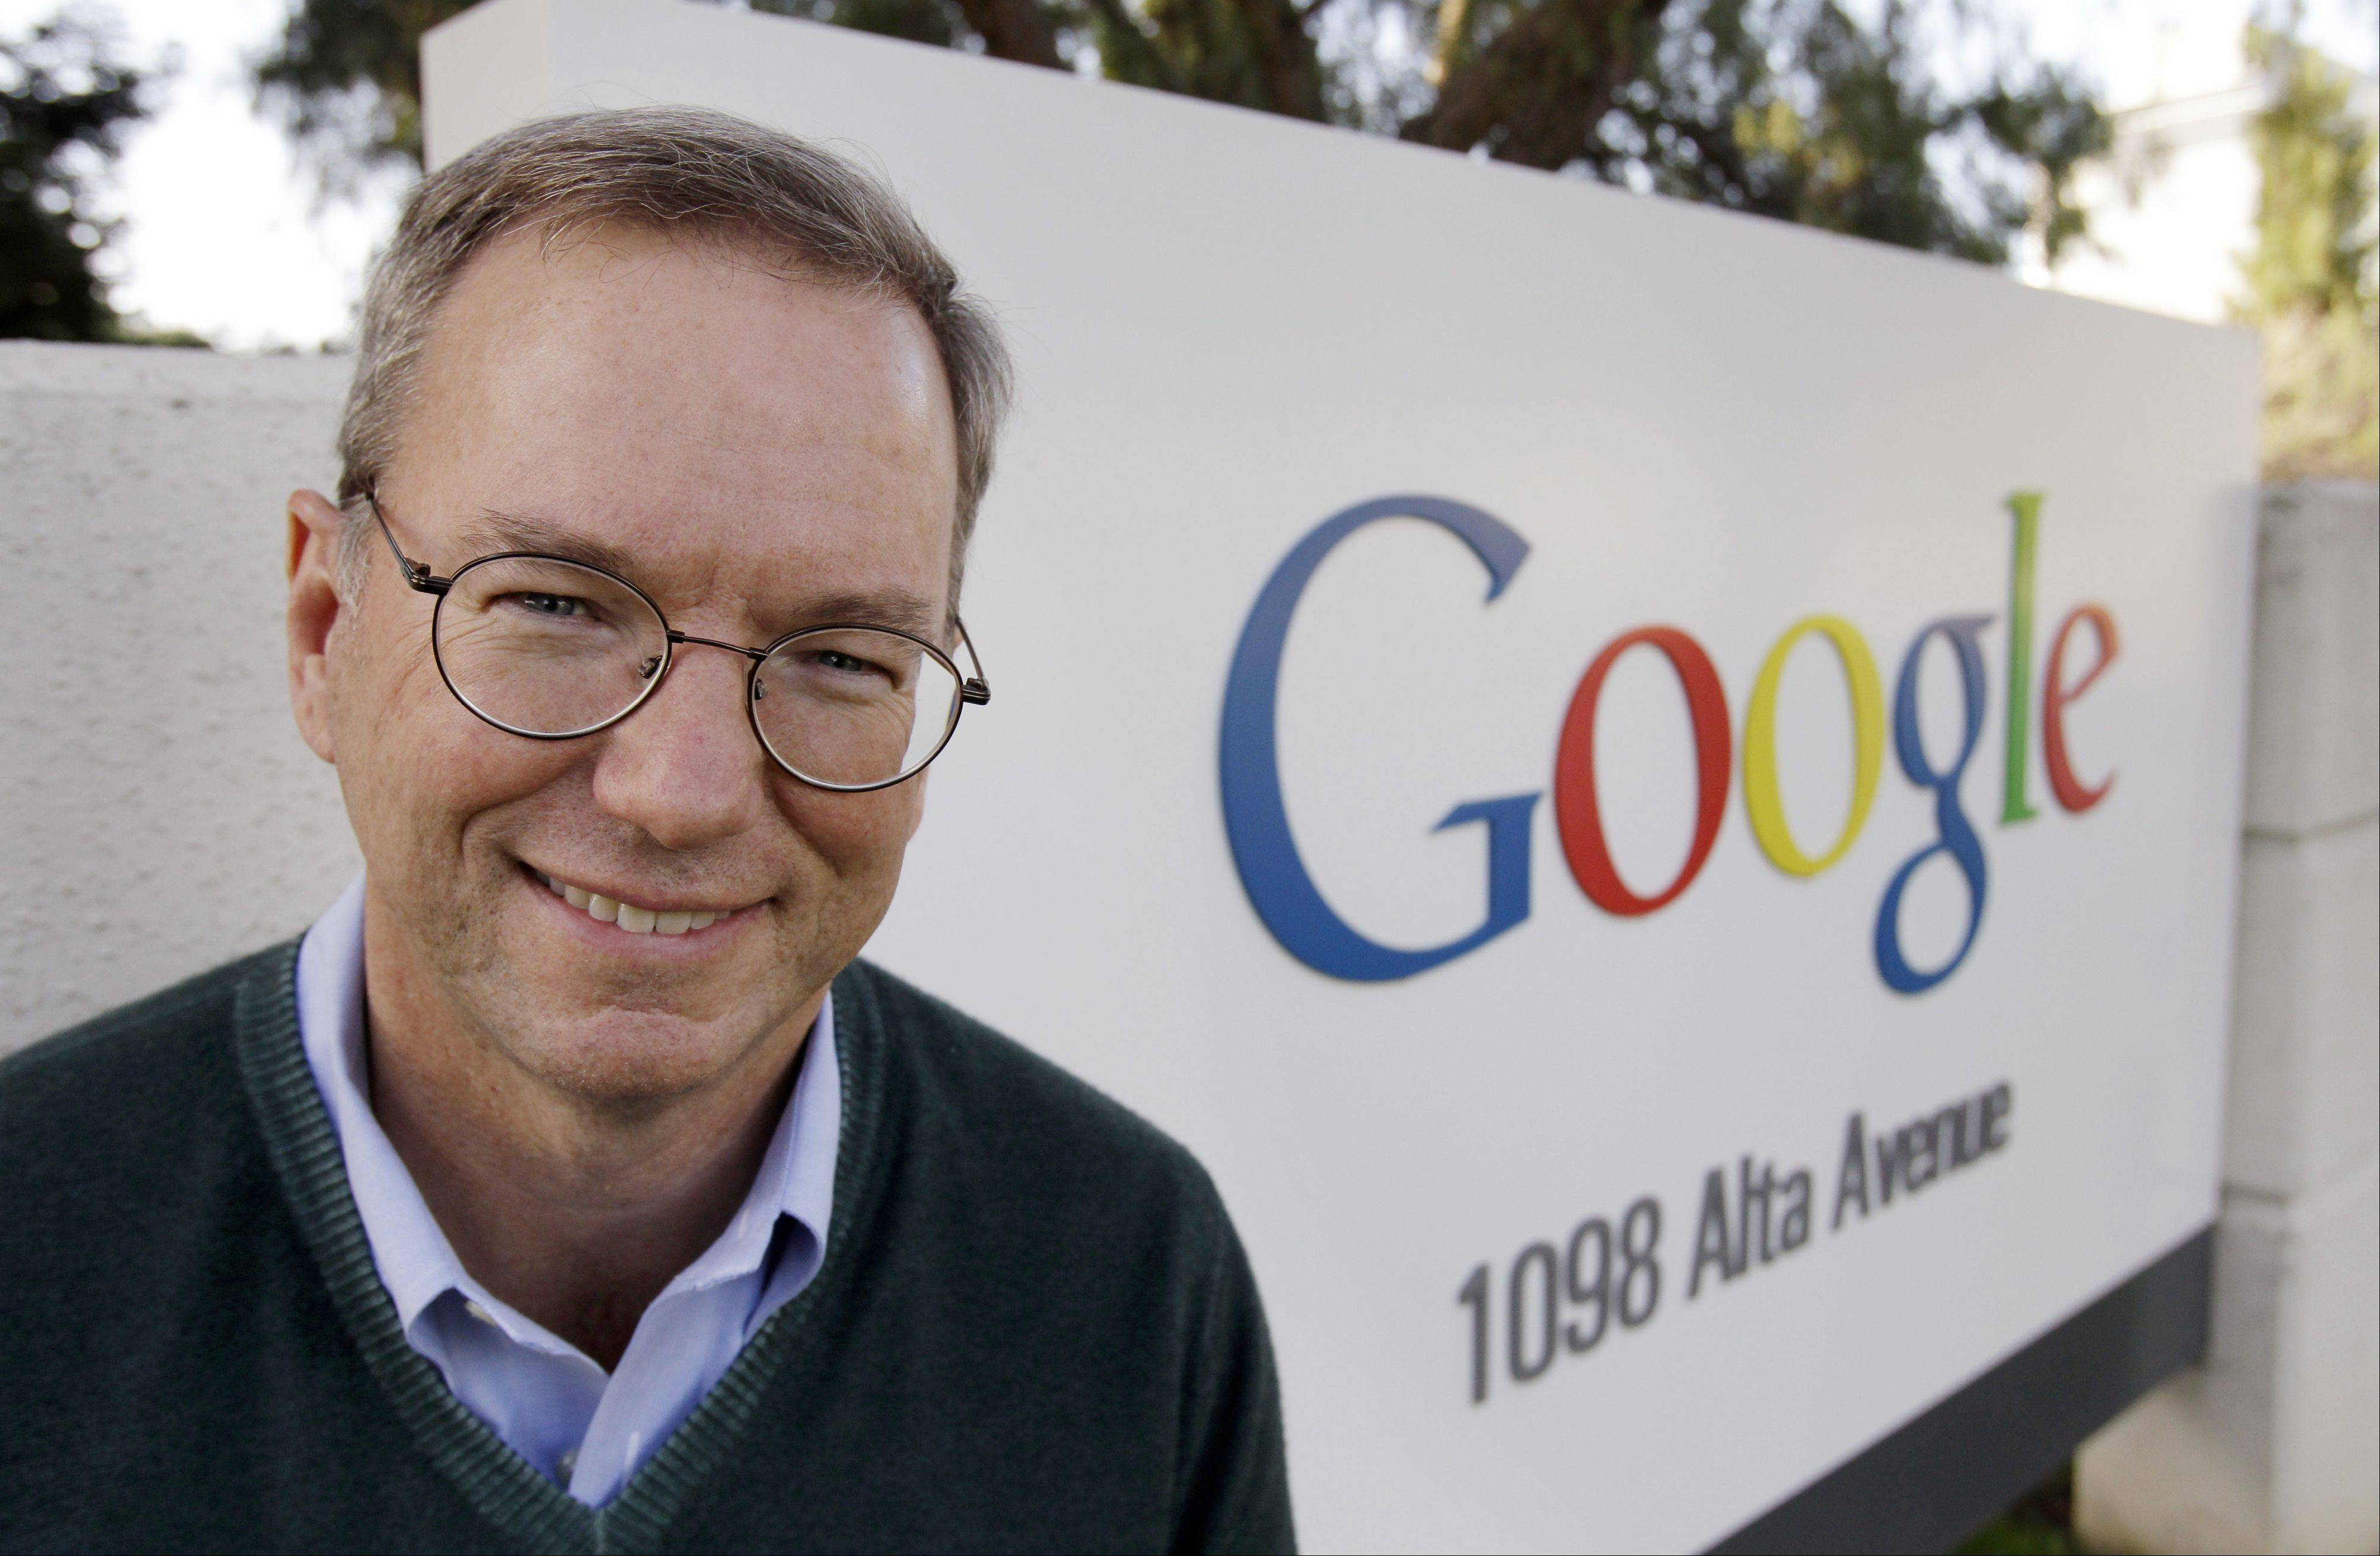 Documents filed Tuesday disclosed Executive Chairman Eric Schmidt will get the biggest award at $6 million to supplement his estimated fortune of $8 billion.